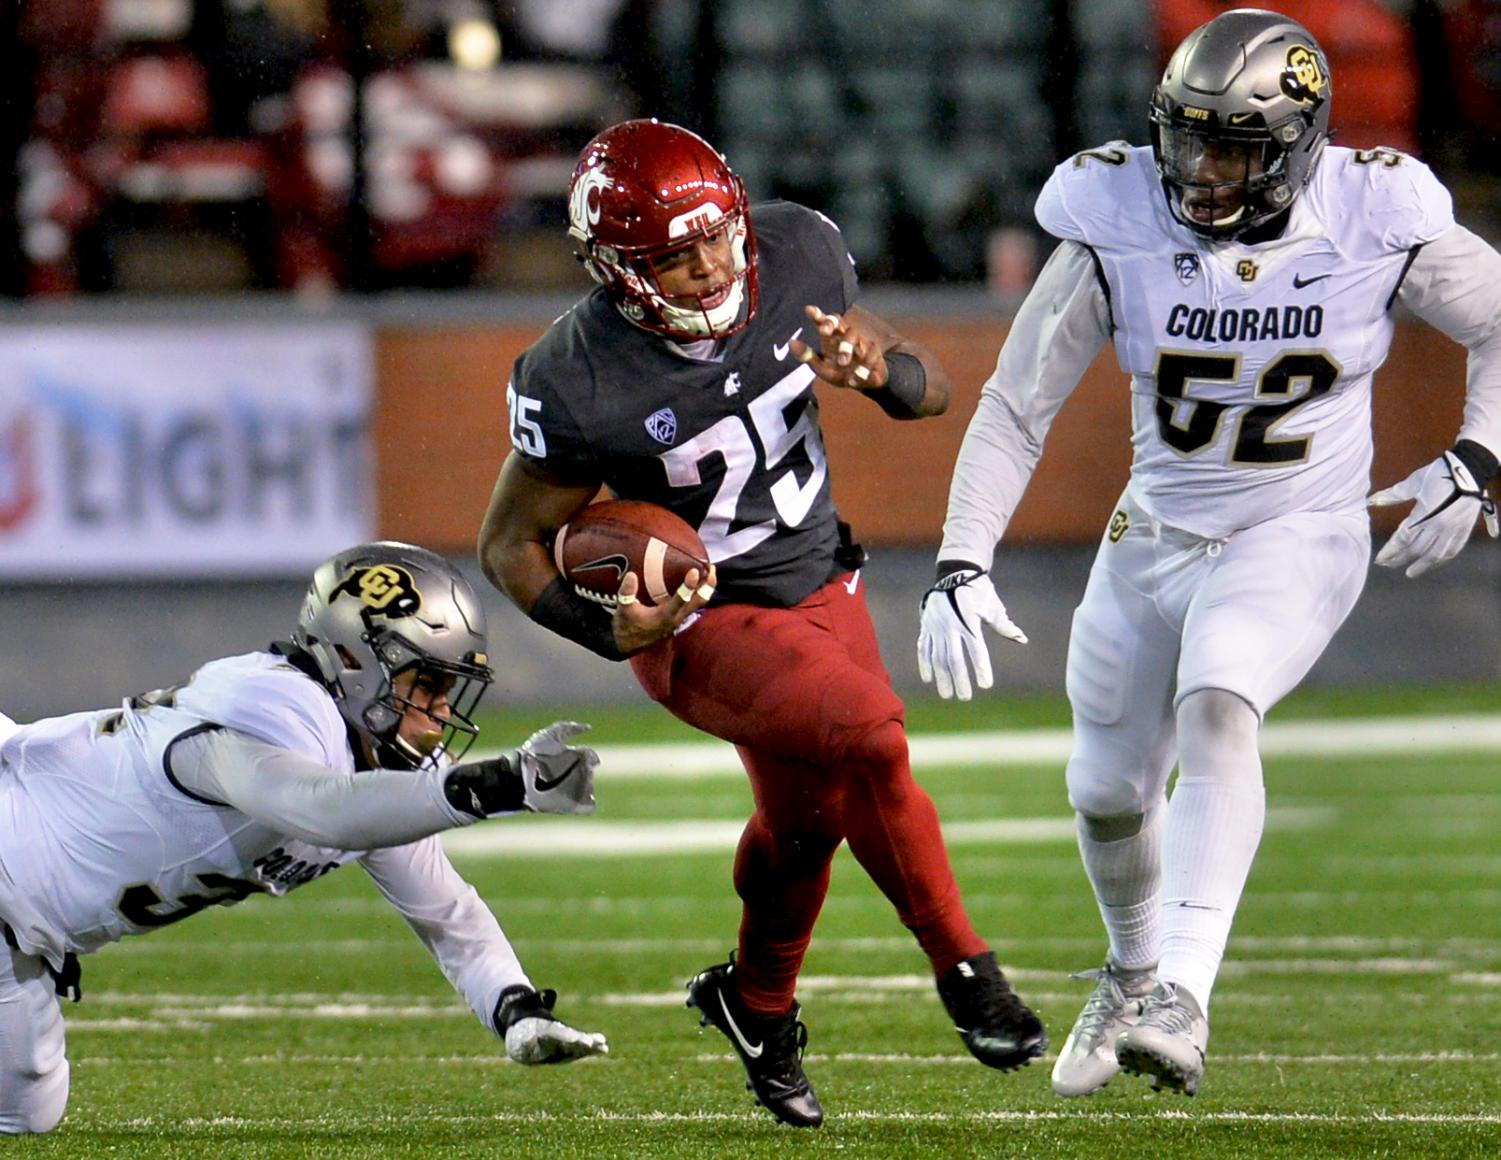 Redshirt senior running back Jamal Morrow dodges a Colorado defender during the Oct. 21 game against the Buffaloes.